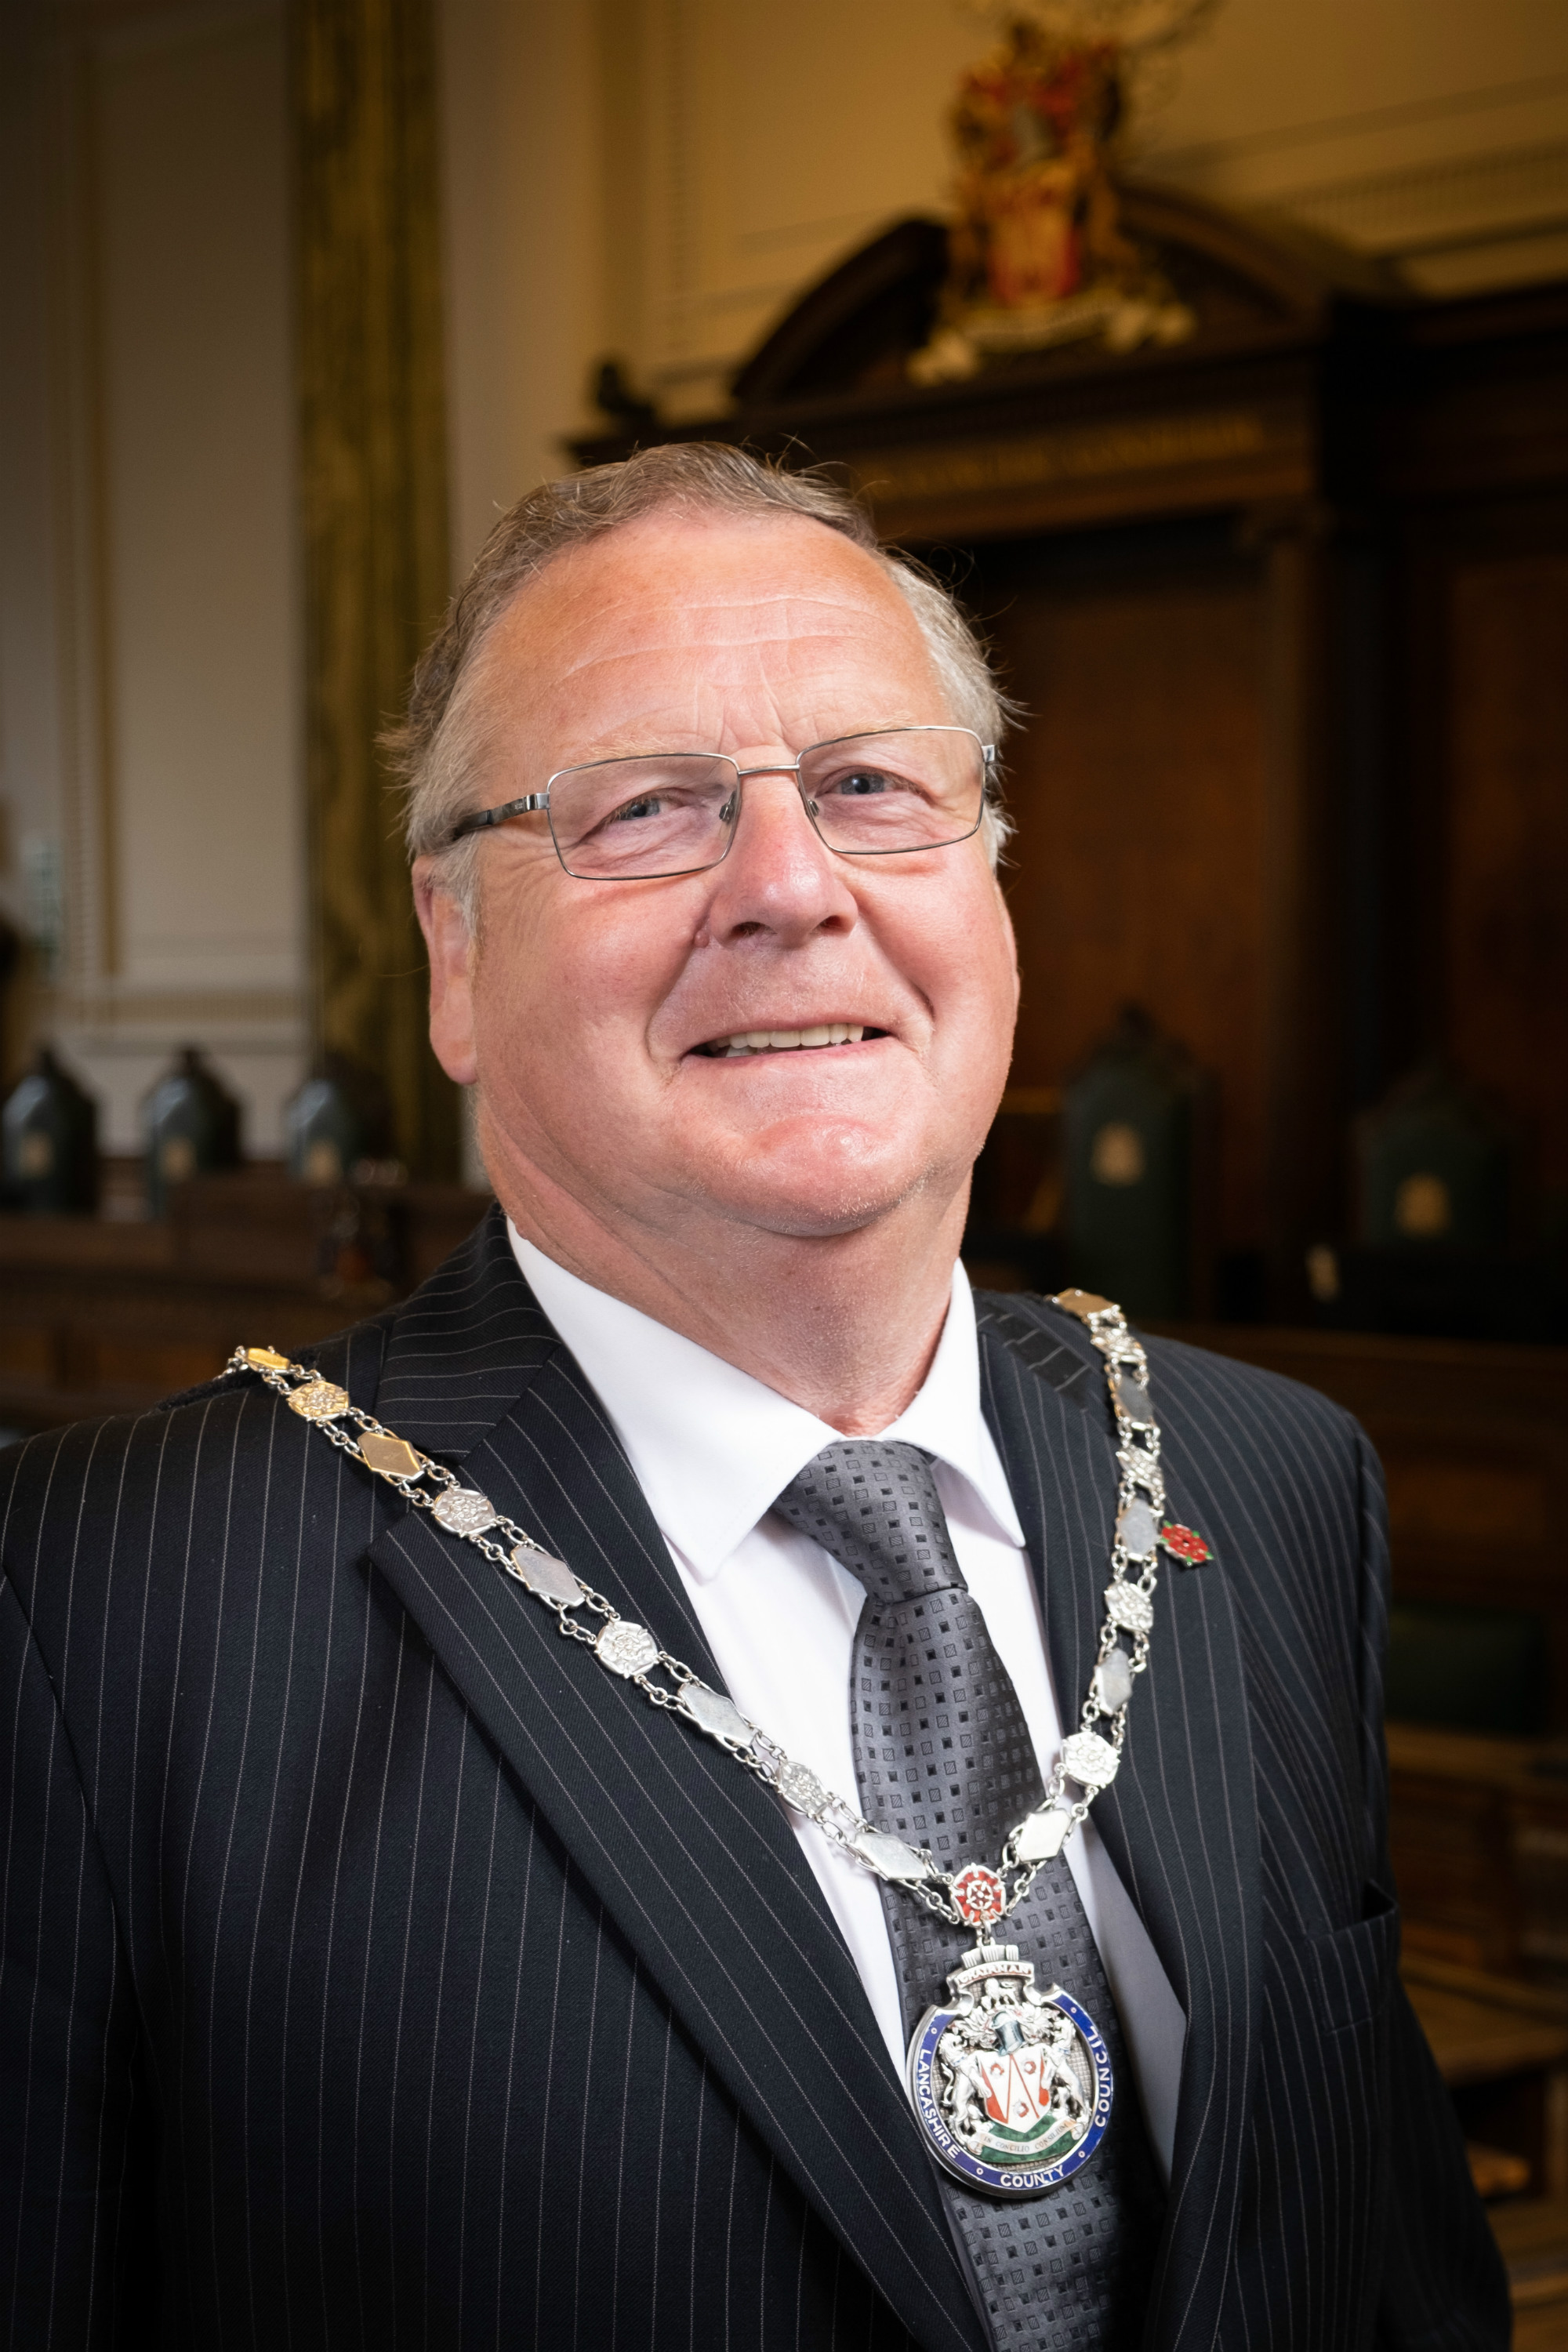 , Farmer Paul is the 50th person to be chairman, Skem News - The Top Source for Skelmersdale News